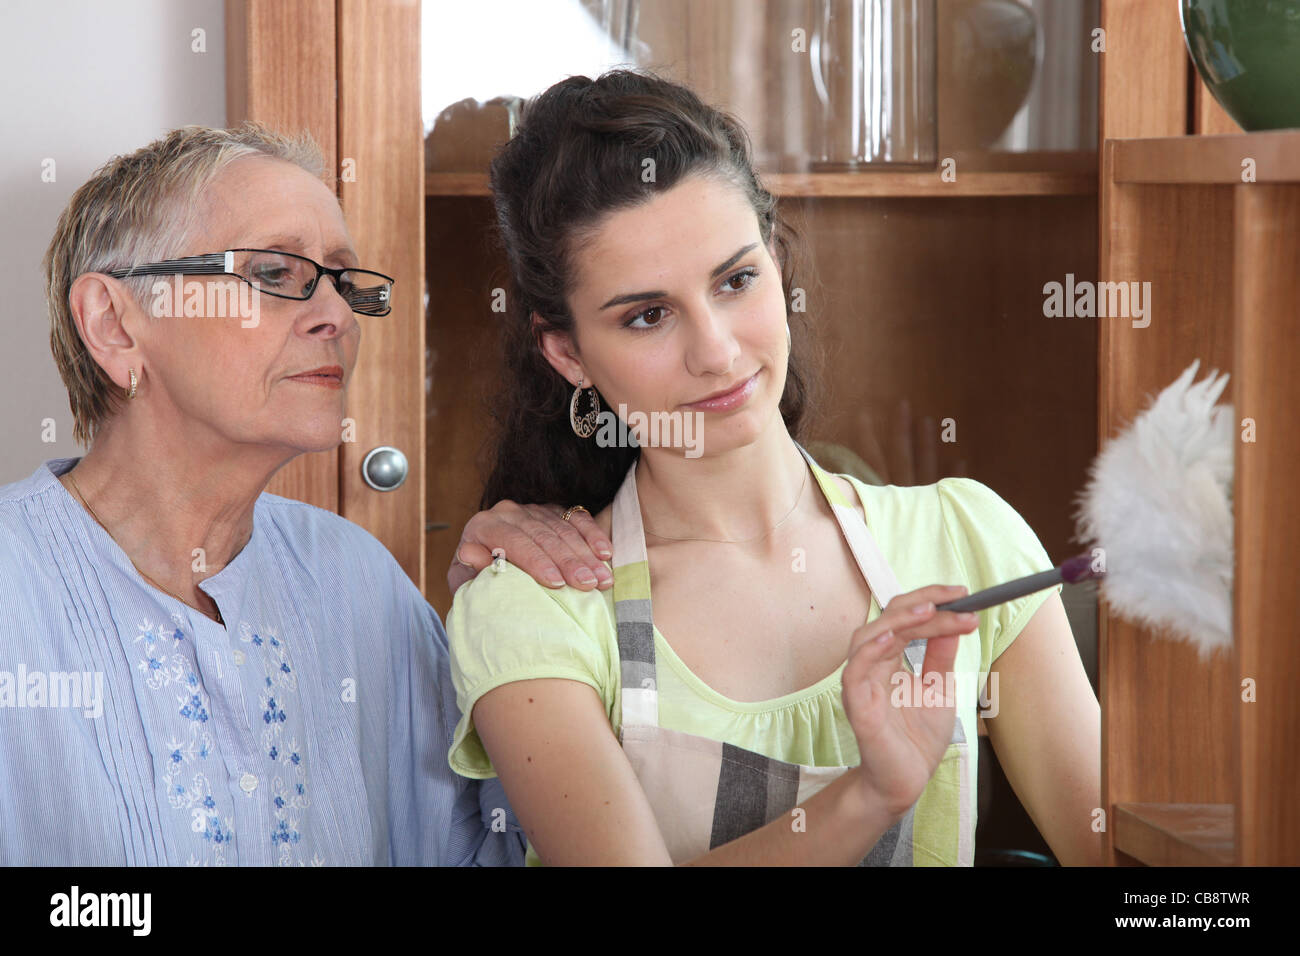 young woman helping senior lady with the cleaning - Stock Image